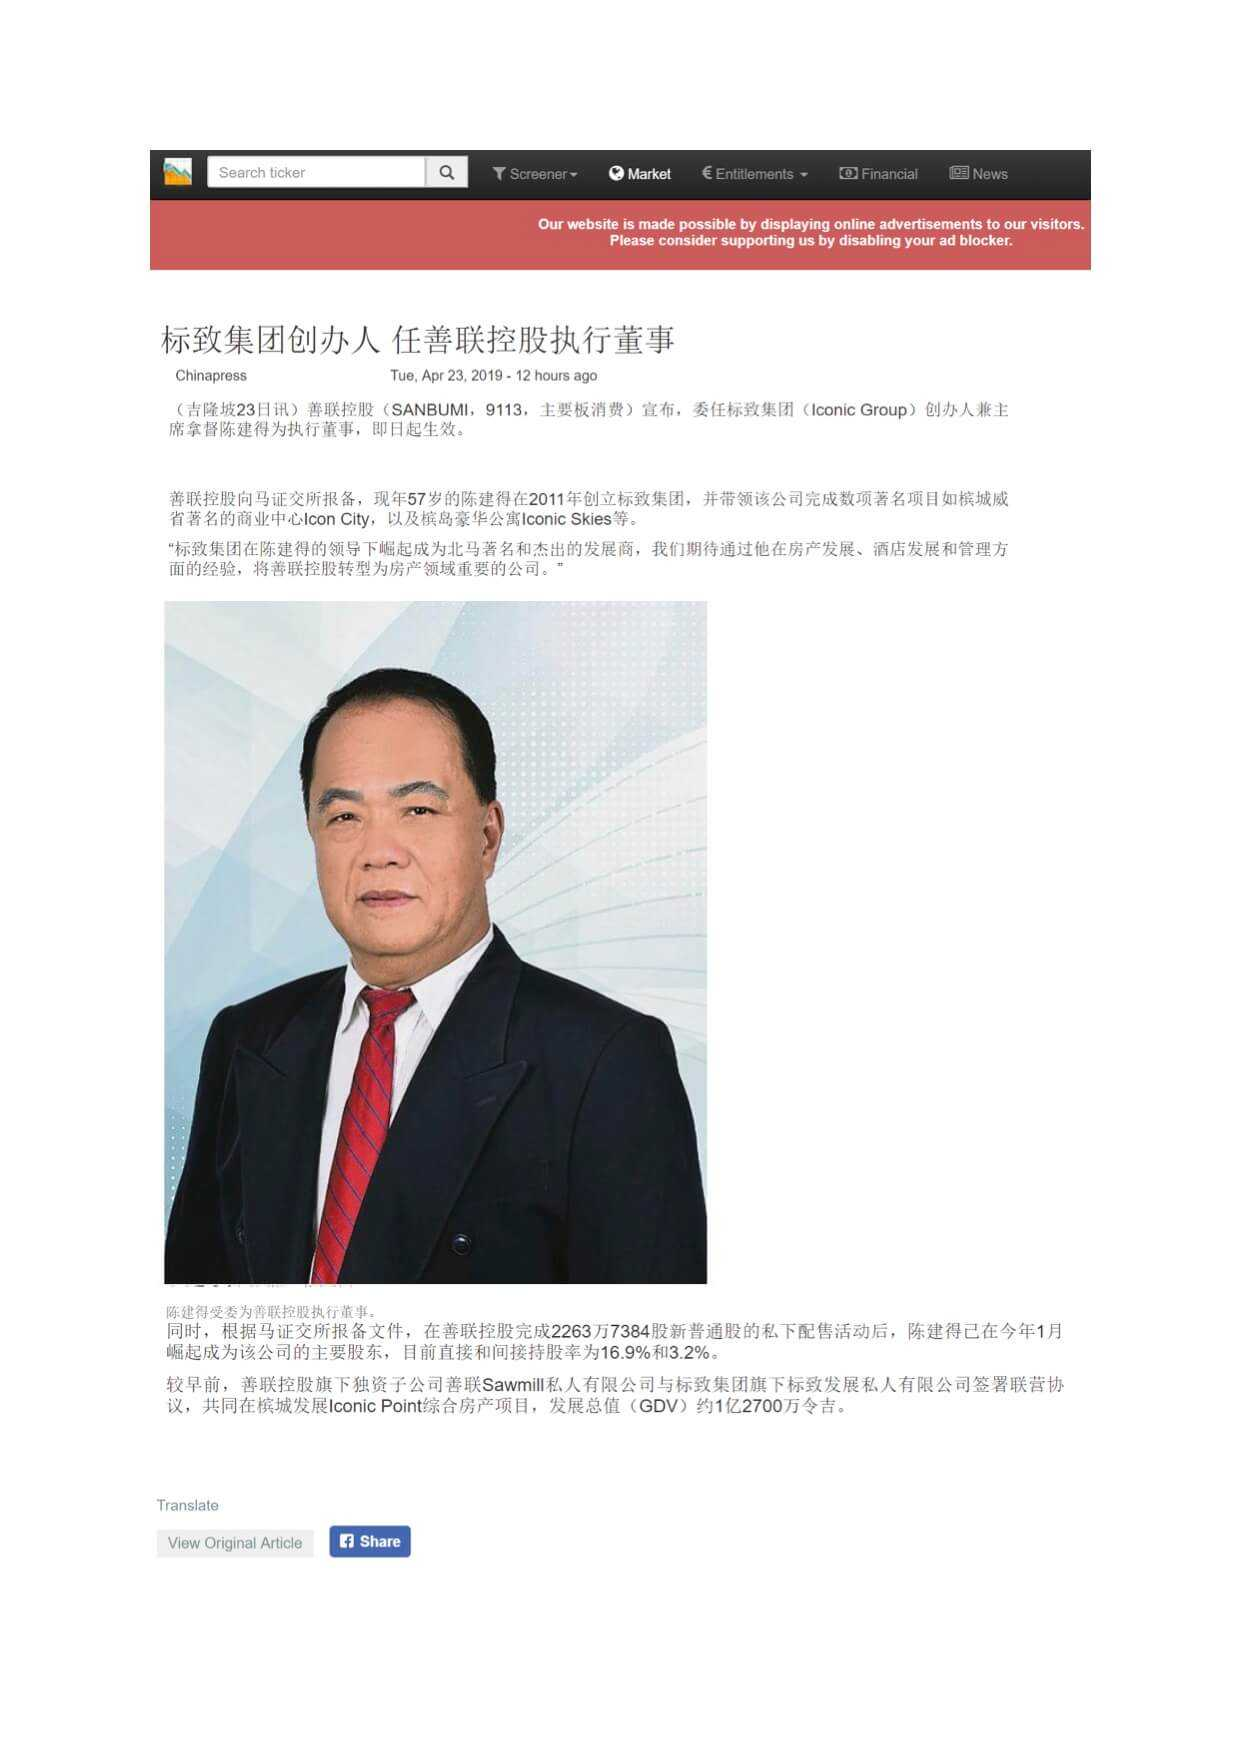 19april23 klsescreener business iconic group founder appointed as sanbumi executive director